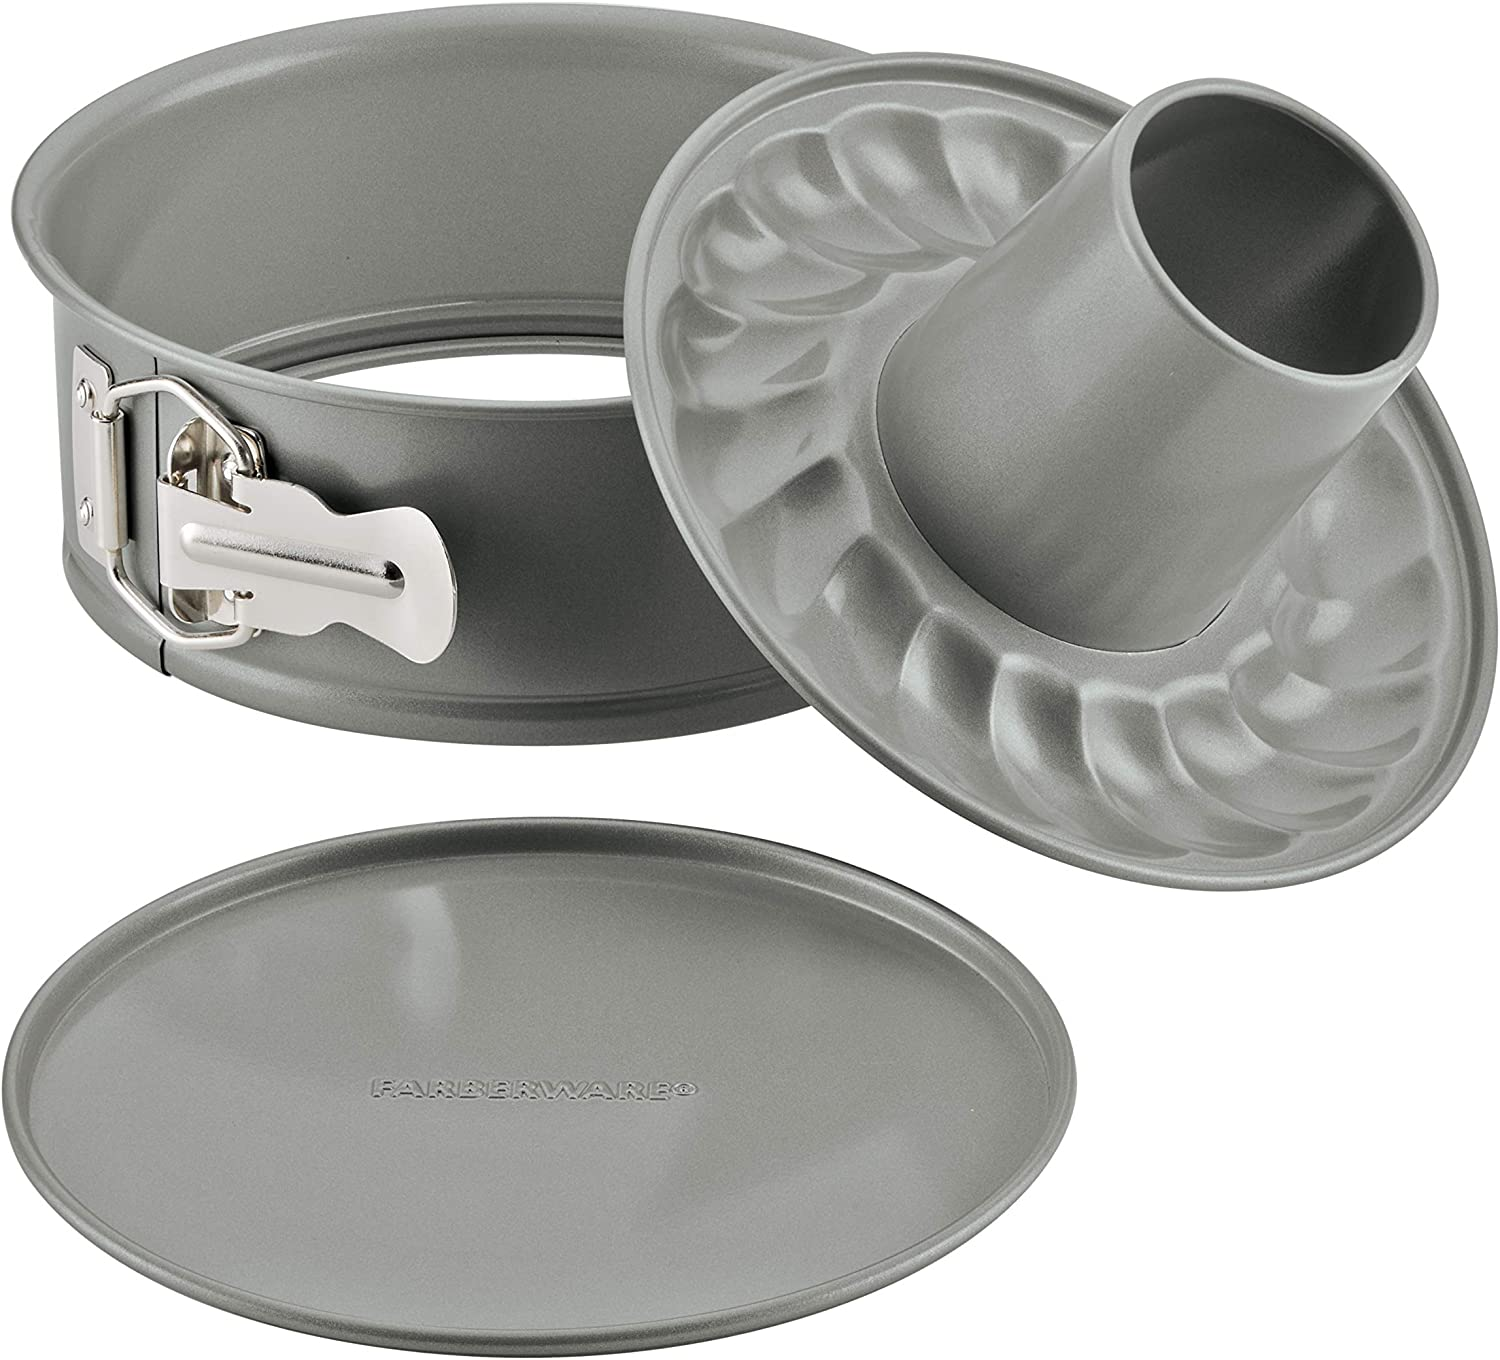 Farberware Pressure Cooker Bakeware 2-in-1 Nonstick Springform with Fluted Mold Insert, 7-Inch, Gray, 7 Inch